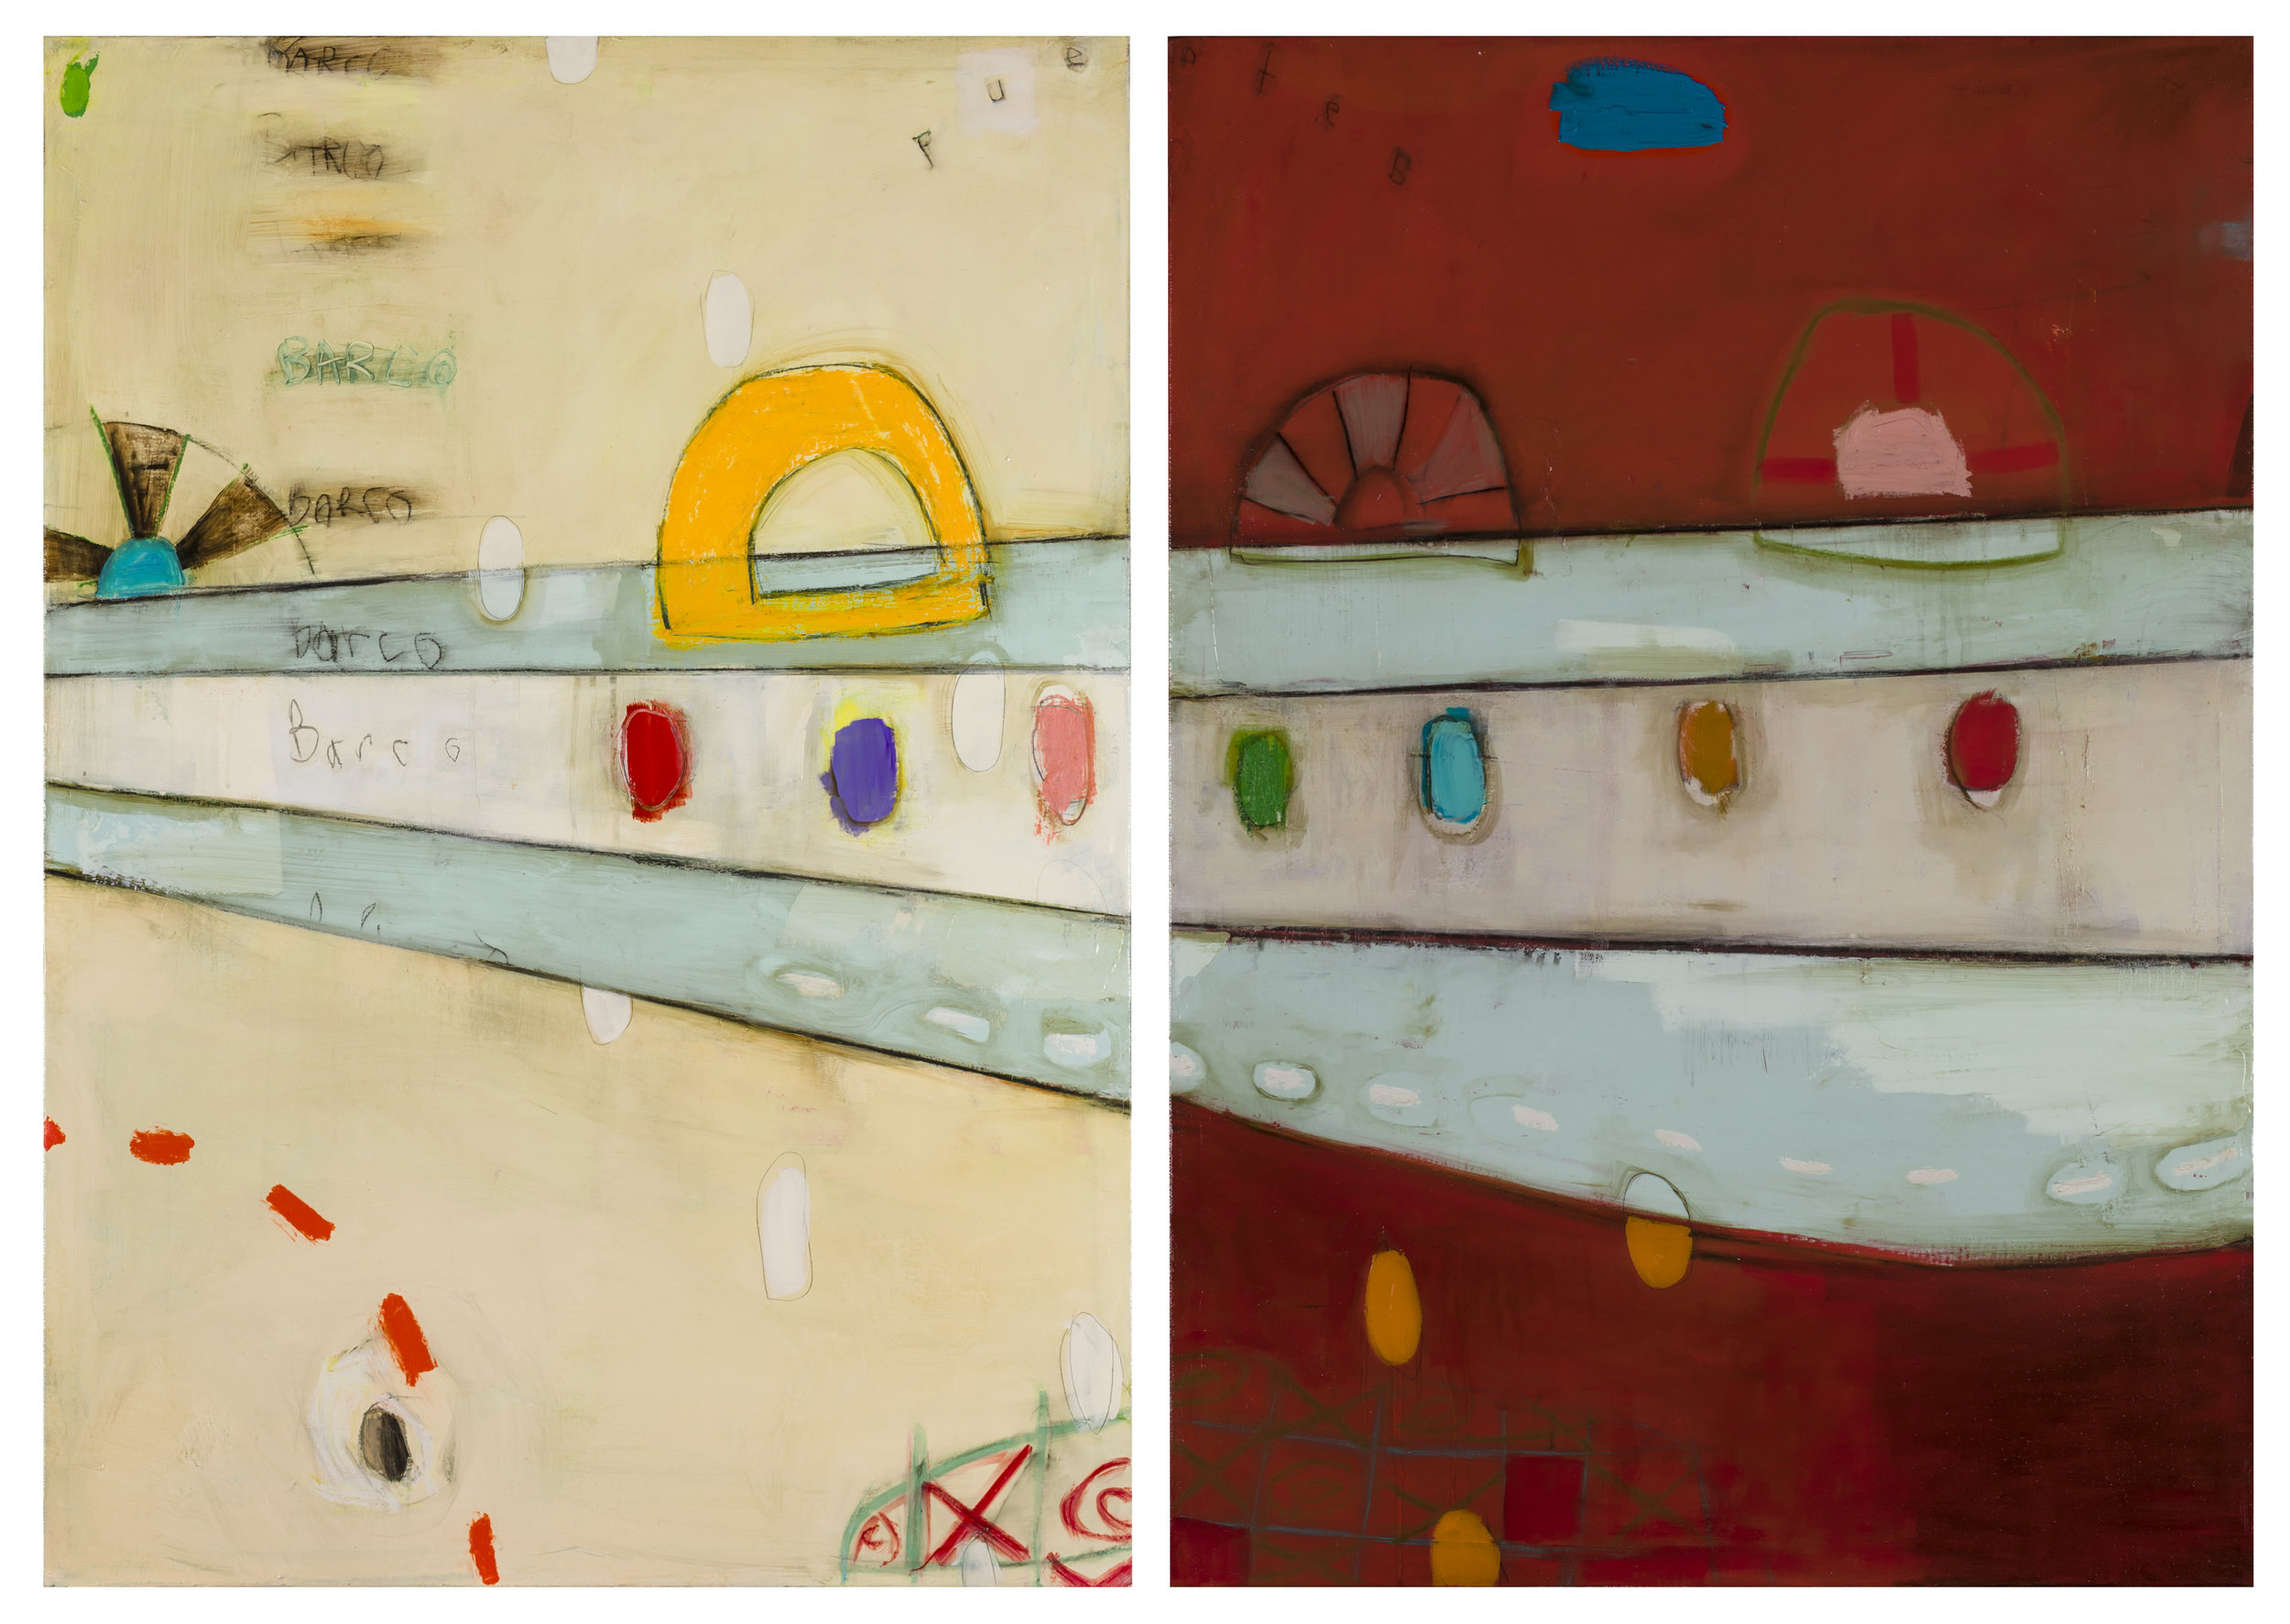 """Boats and Bridges - dyptich  Oil and enamel on canvas - 2017 - 39"""" x 55"""" / 100 x 140 cm"""